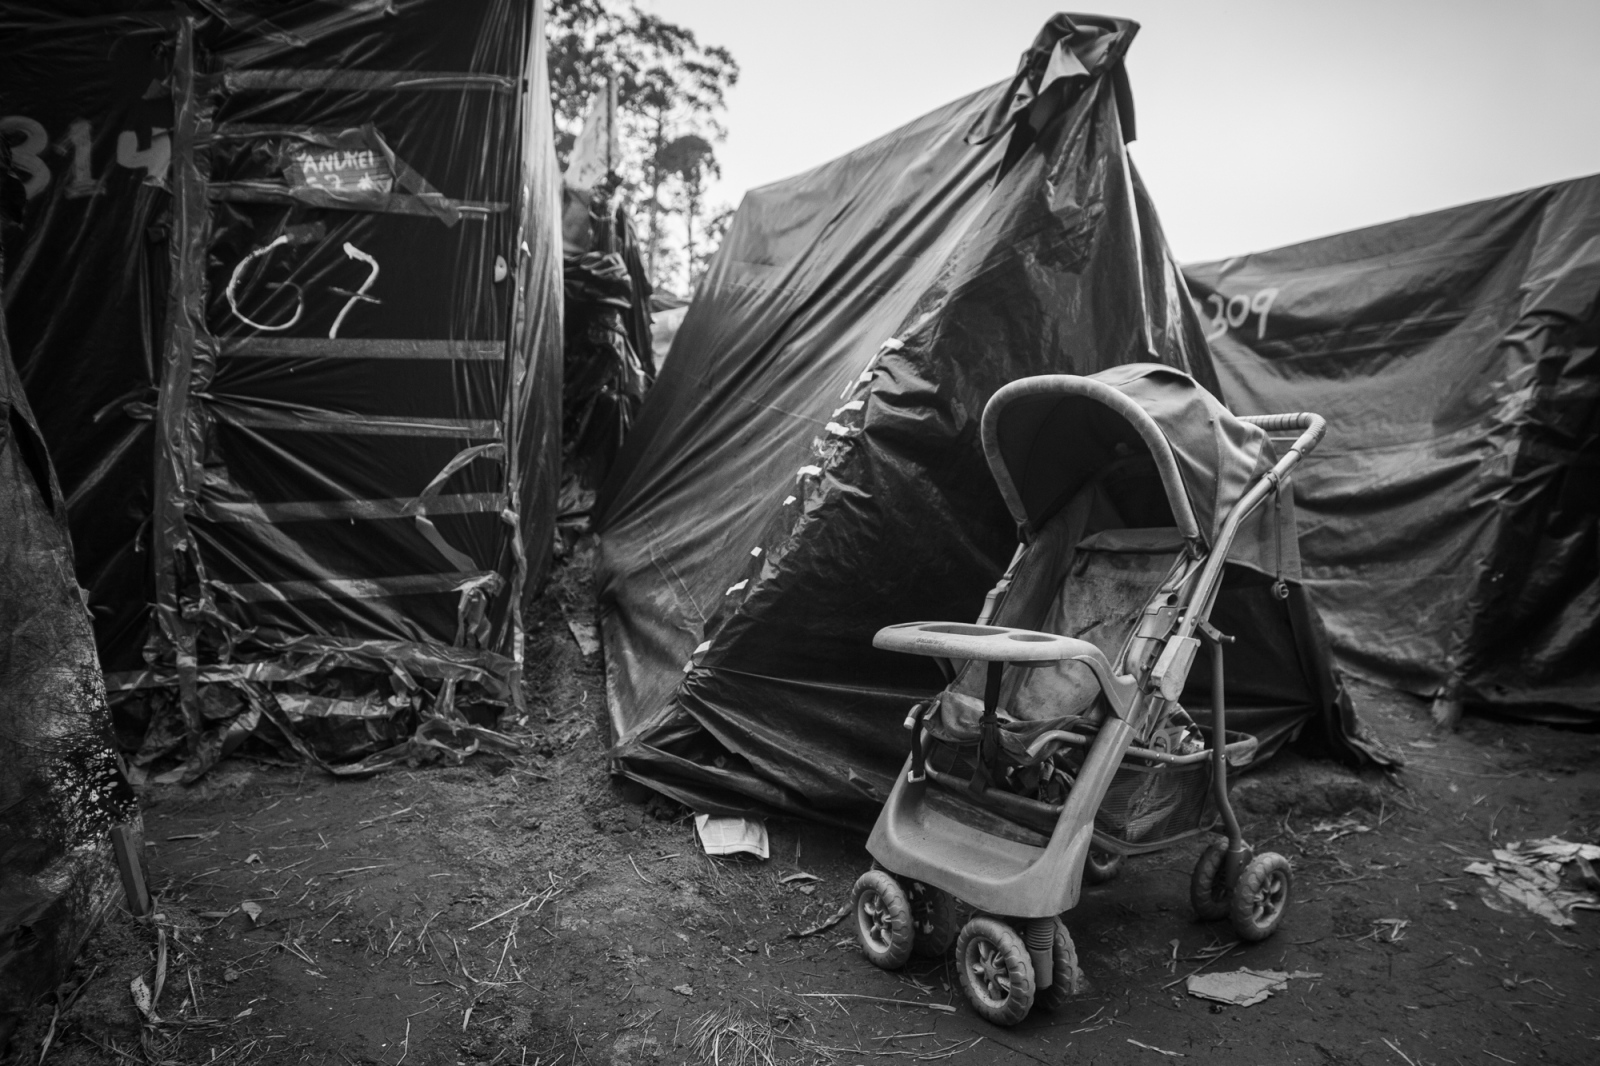 A baby kart outside one of the tents where lives a family in Copa do Povo (People's Cup) Camp in Itaquera, São Paulo. The Copa do Povo Camp, is just a few miles from the Arena Corinthians and has 5,000 homeless workers and their families occupied area of fifteen acres. They are homeless after rents skyrocketed because of the World Cup.